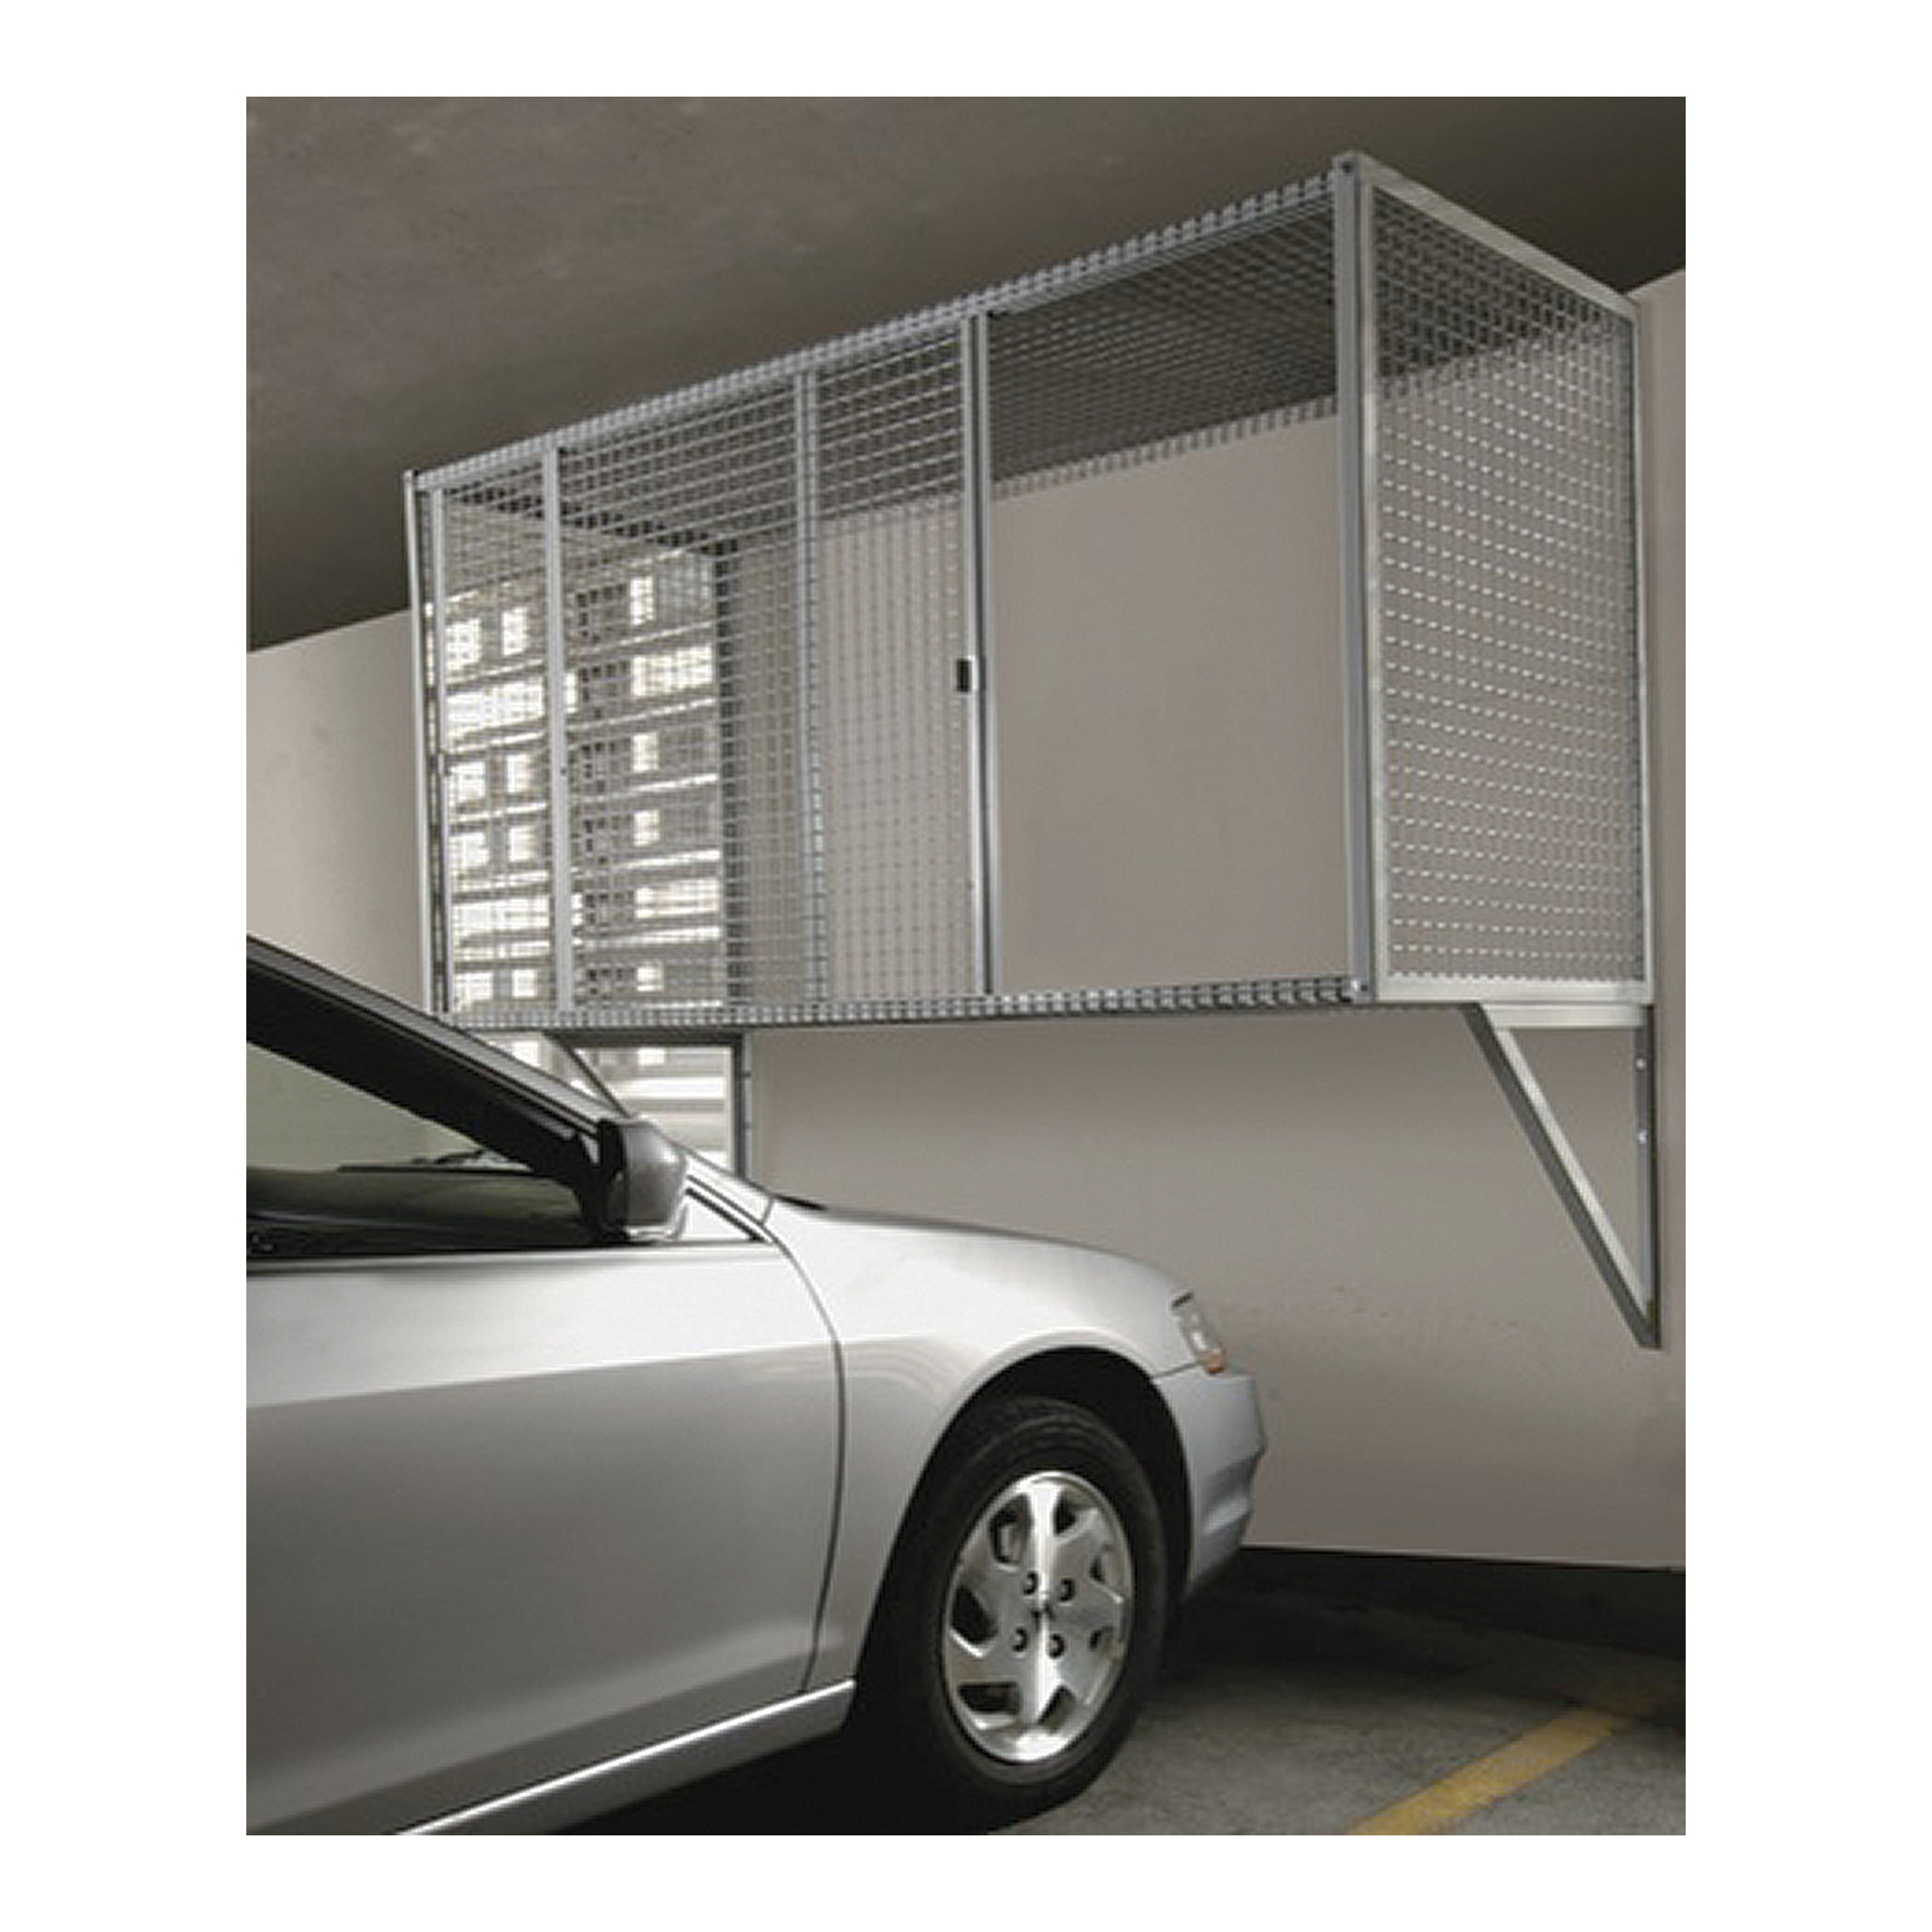 #2 Top Seller AK Garage Storage Locker U2014 96in.W X 36in.D X 42in.H